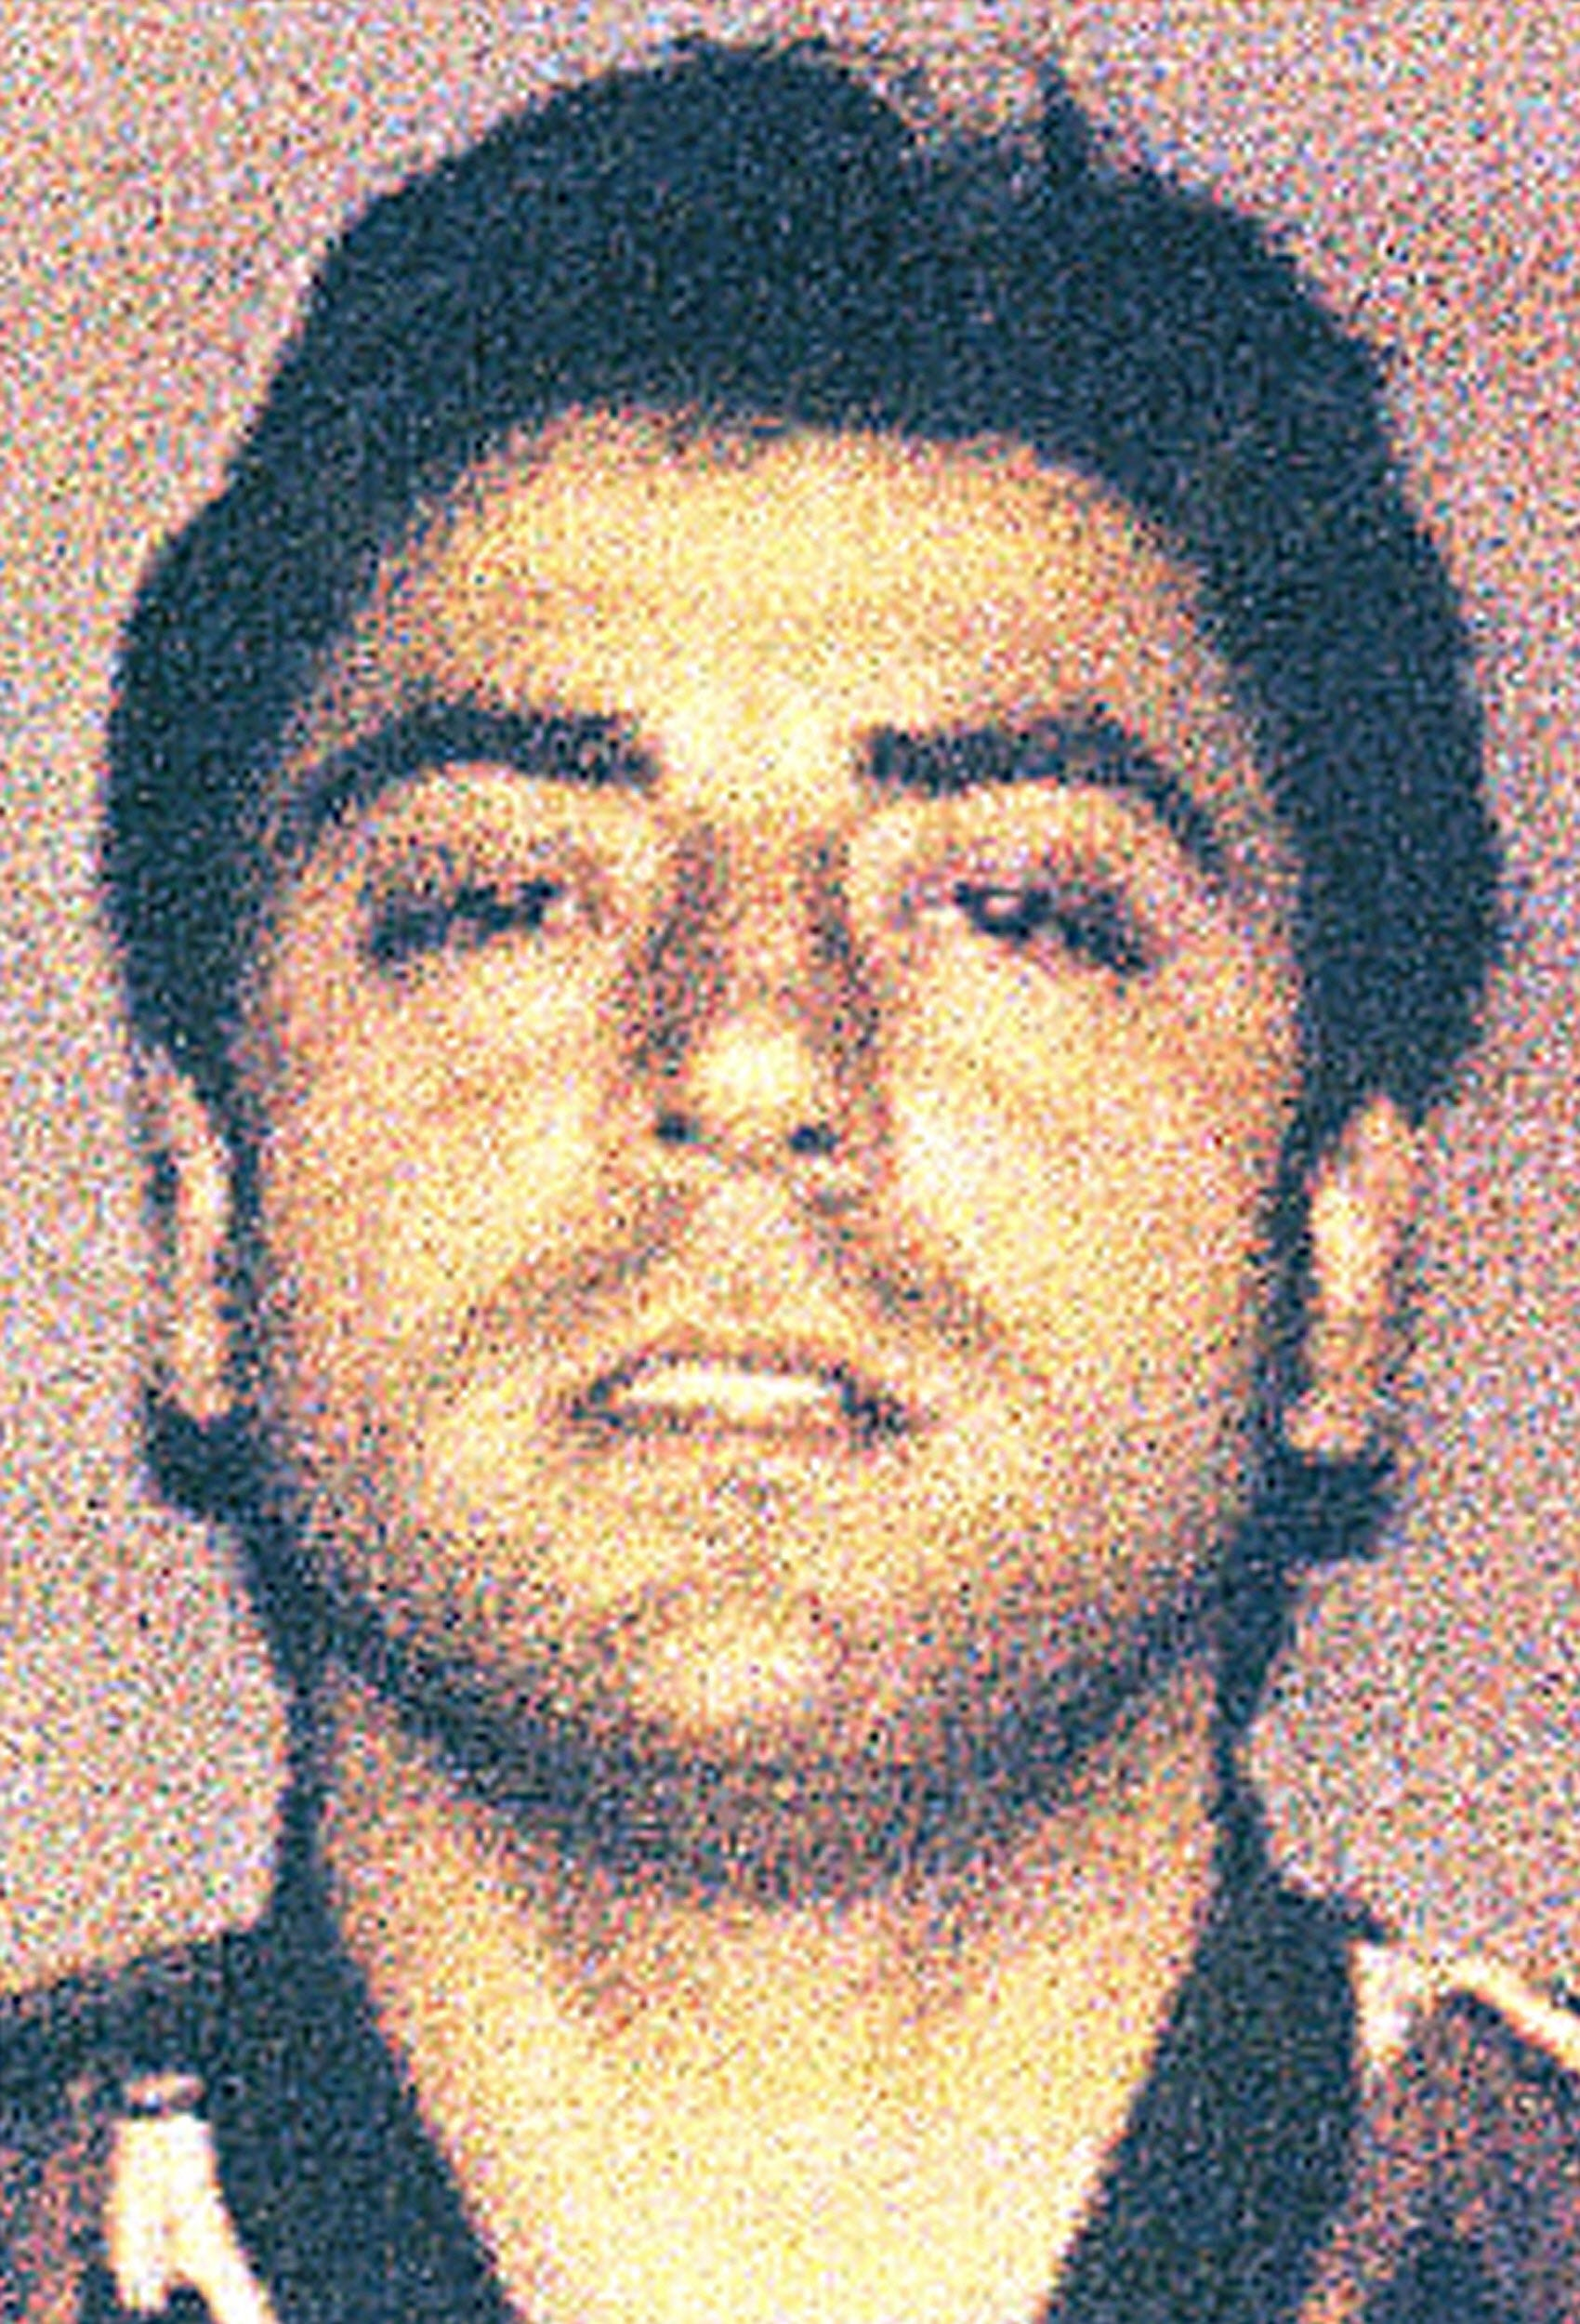 Alleged Gambino crime boss Frank Cali's slaying a throwback to bygone era, experts say